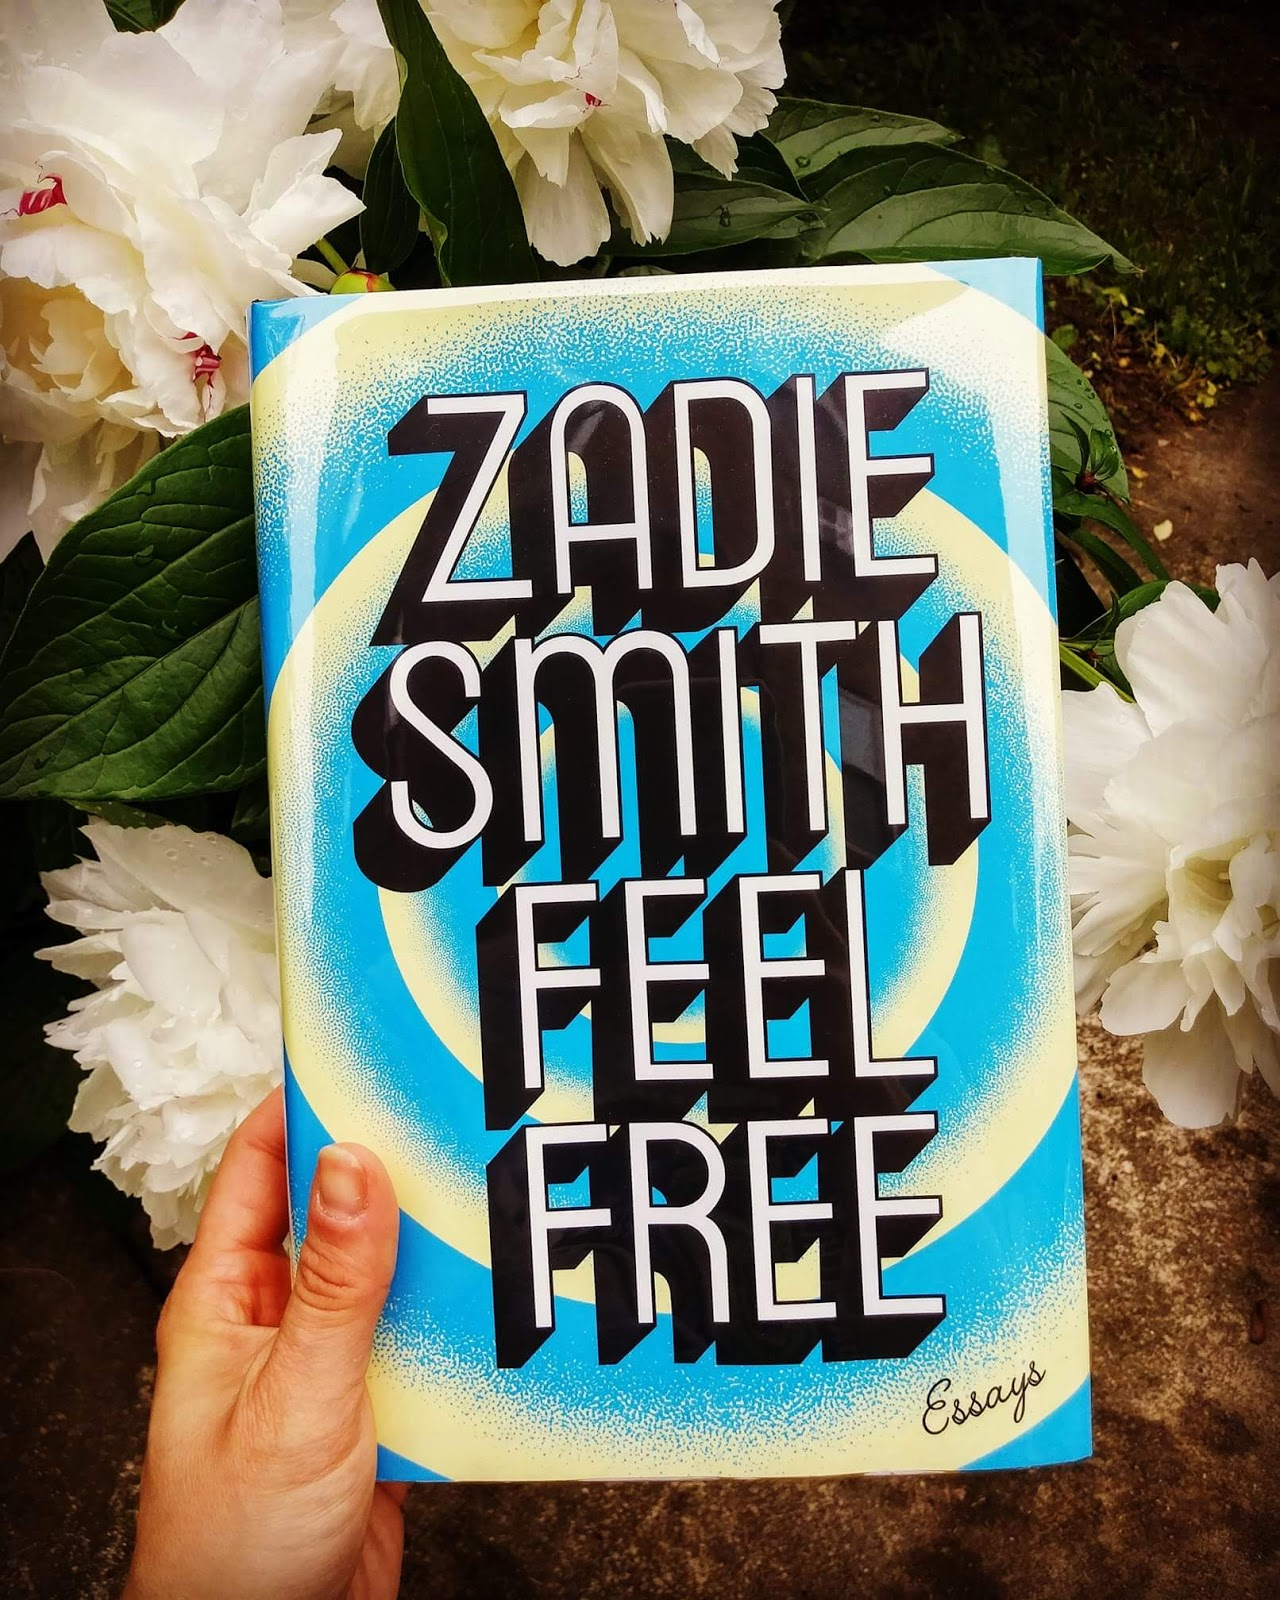 005 33186851 2081800258703093 8881318672442851328 O Zadie Smith Essays Essay Wonderful Amazon Radio 4 Full